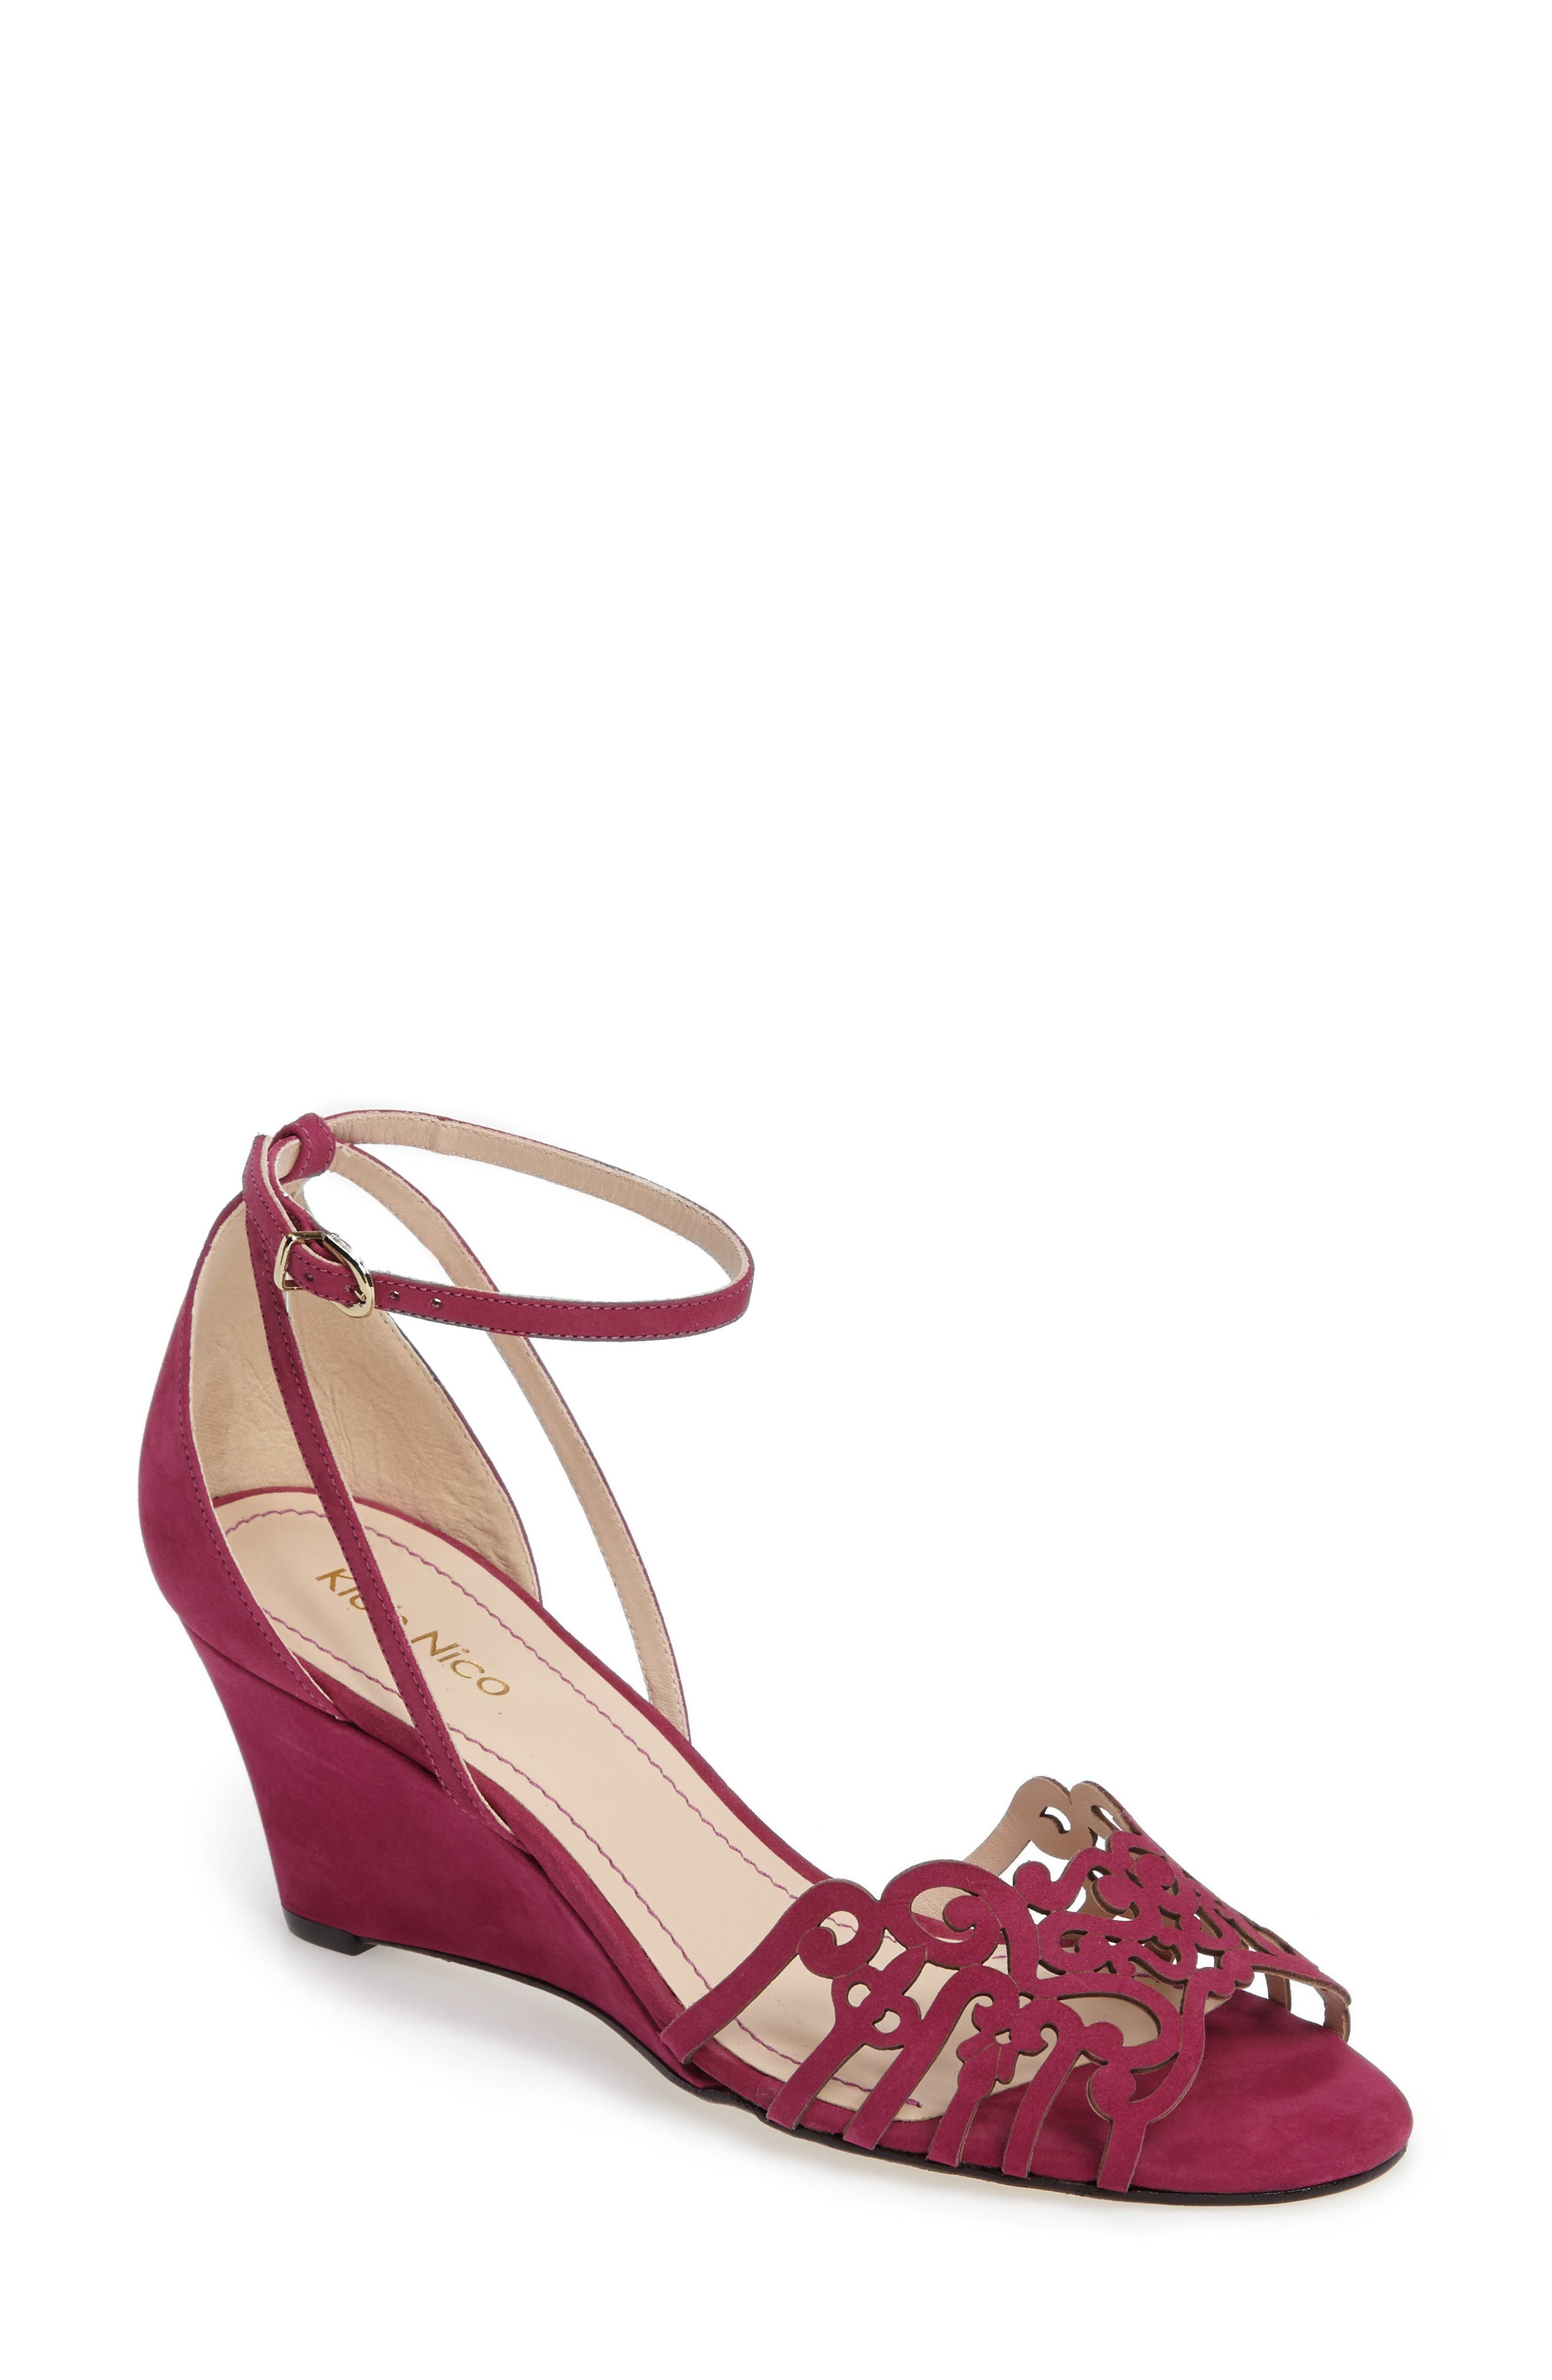 'Kingston' Ankle Strap Wedge Sandal,                         Main,                         color, MAGENTA LEATHER